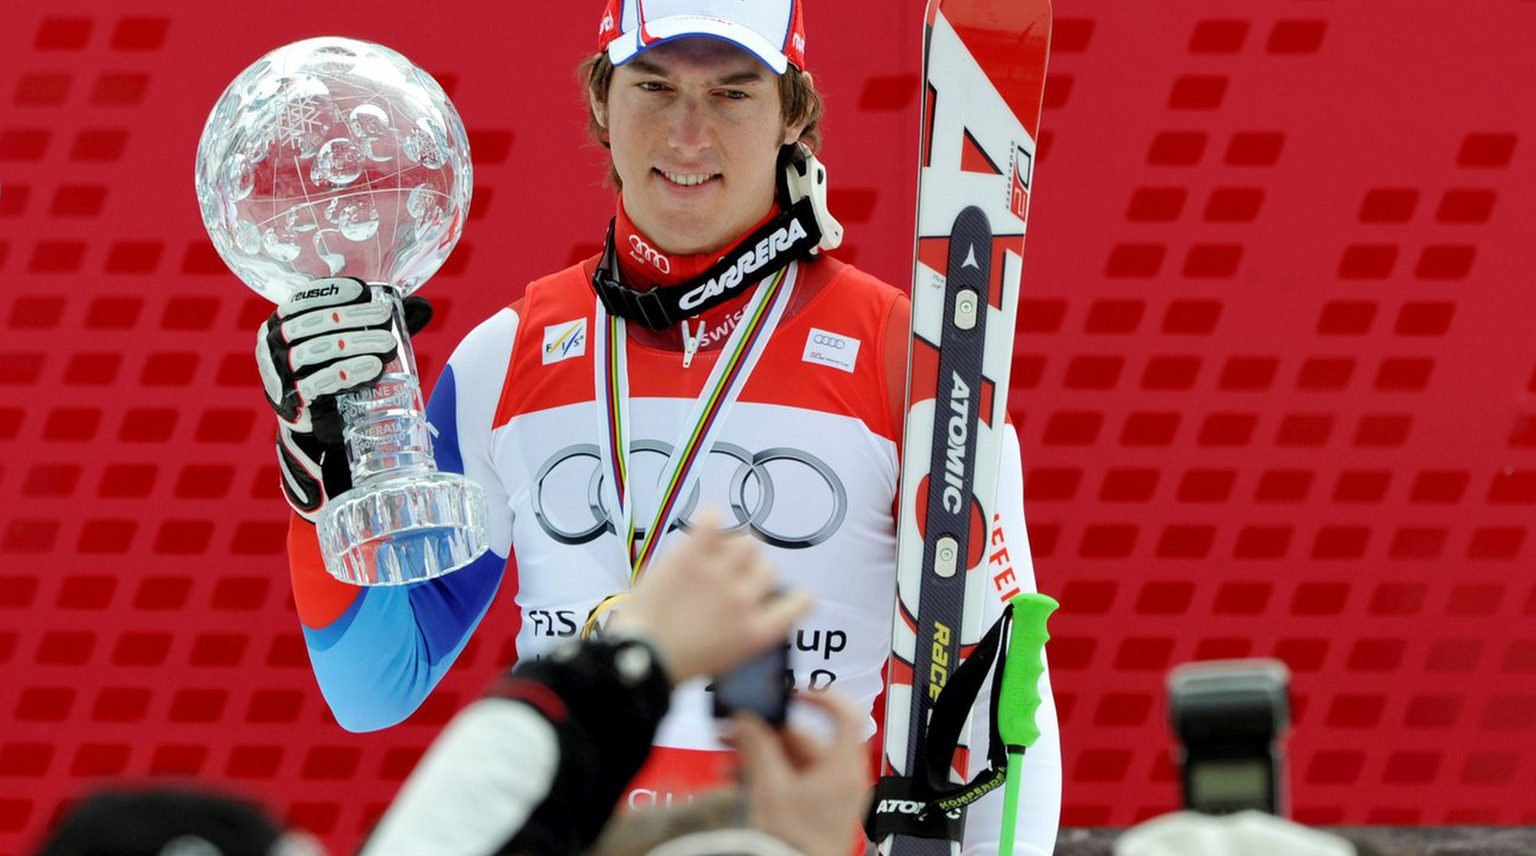 epa02077999 Alpine Skiing World Cup overall winner Carlo Janka from Switzerland poses for photographers with the crystal ball on the podium during the World Cup finals in Garmisch-Partenkirchen, Germany, 13 March 2010.  EPA/PETER KNEFFEL